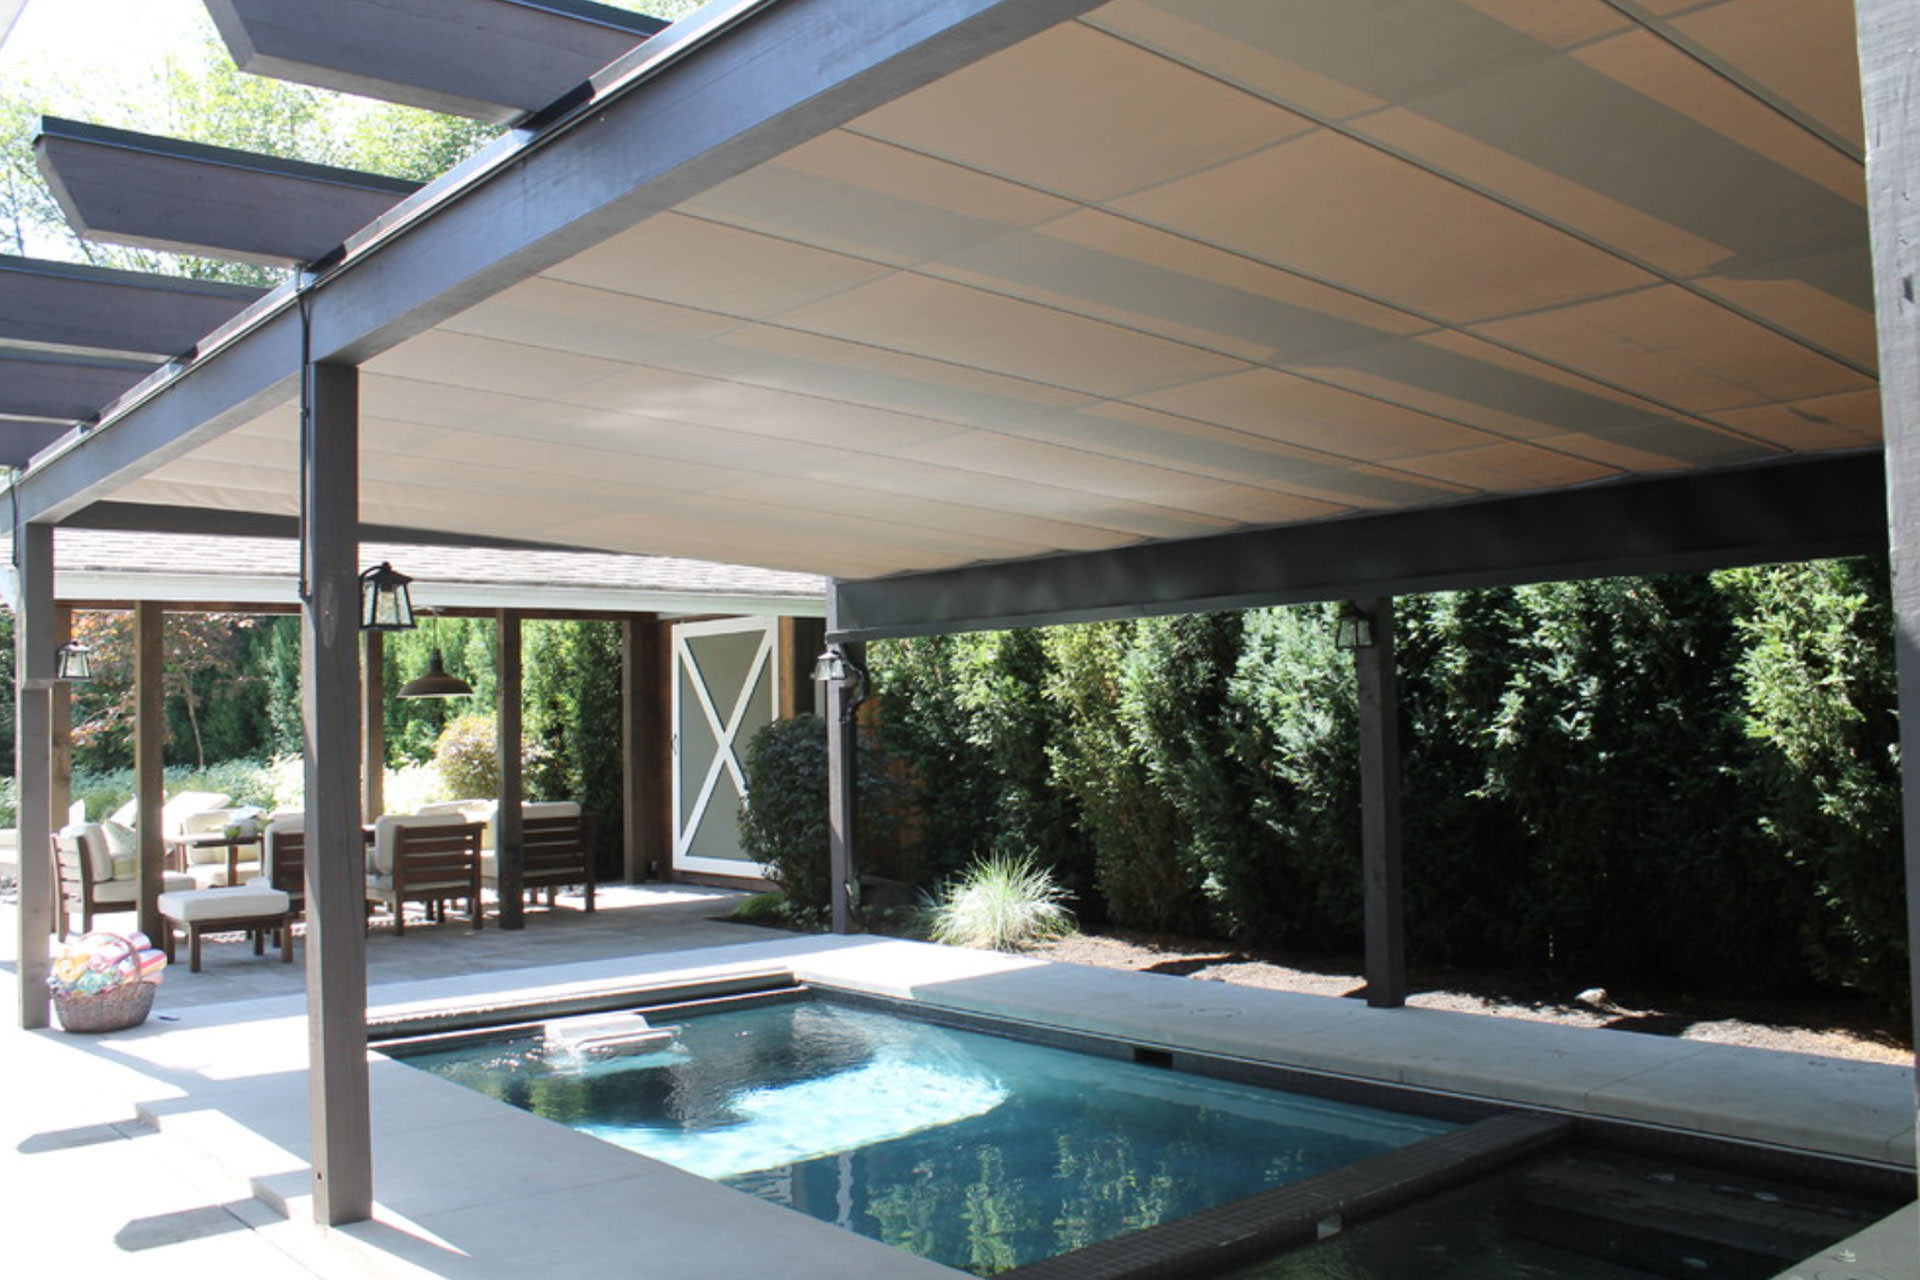 pool shade ideas 7 ways to cover your swimming pool - U Shape Canopy 2015